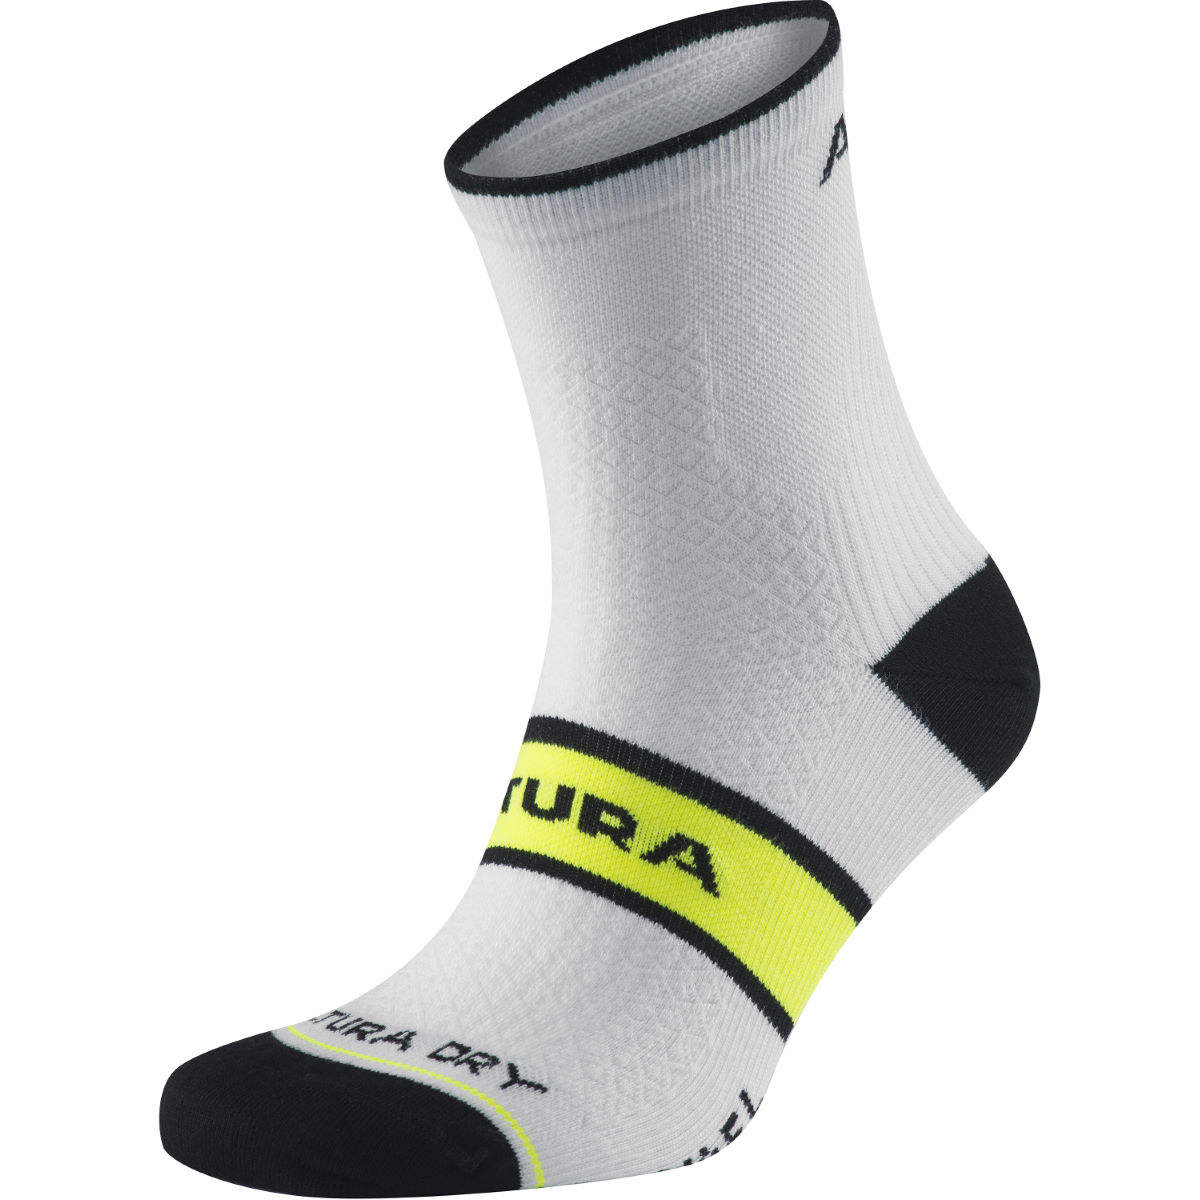 Altura peloton socks cycling socks white ss18 al14pes8m